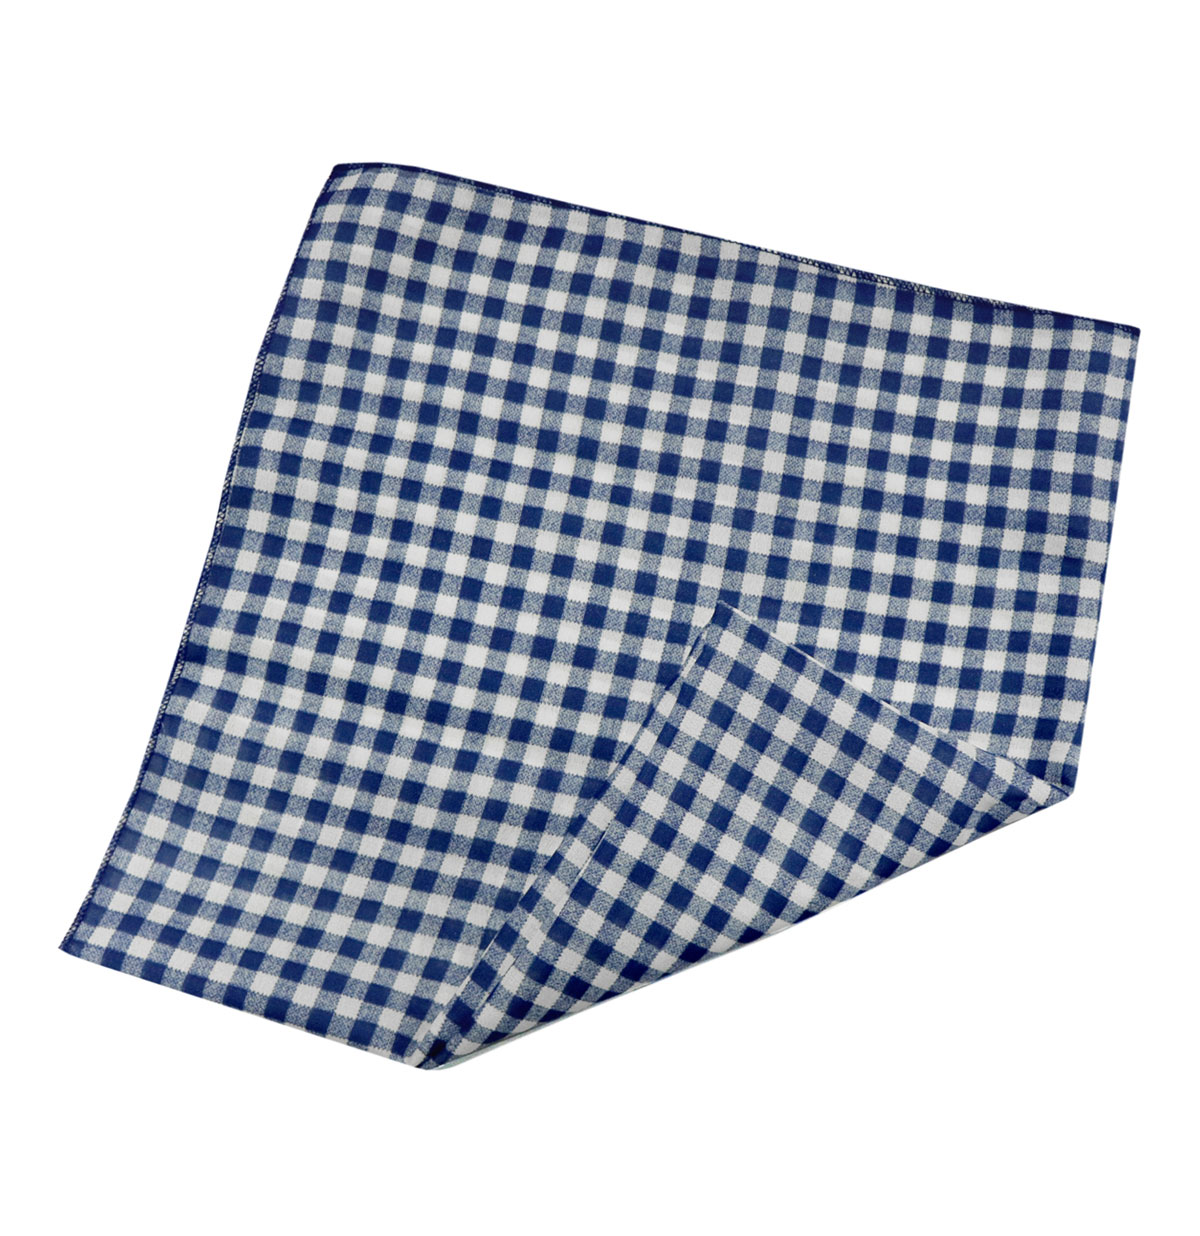 Bandana Gingham Navy/White